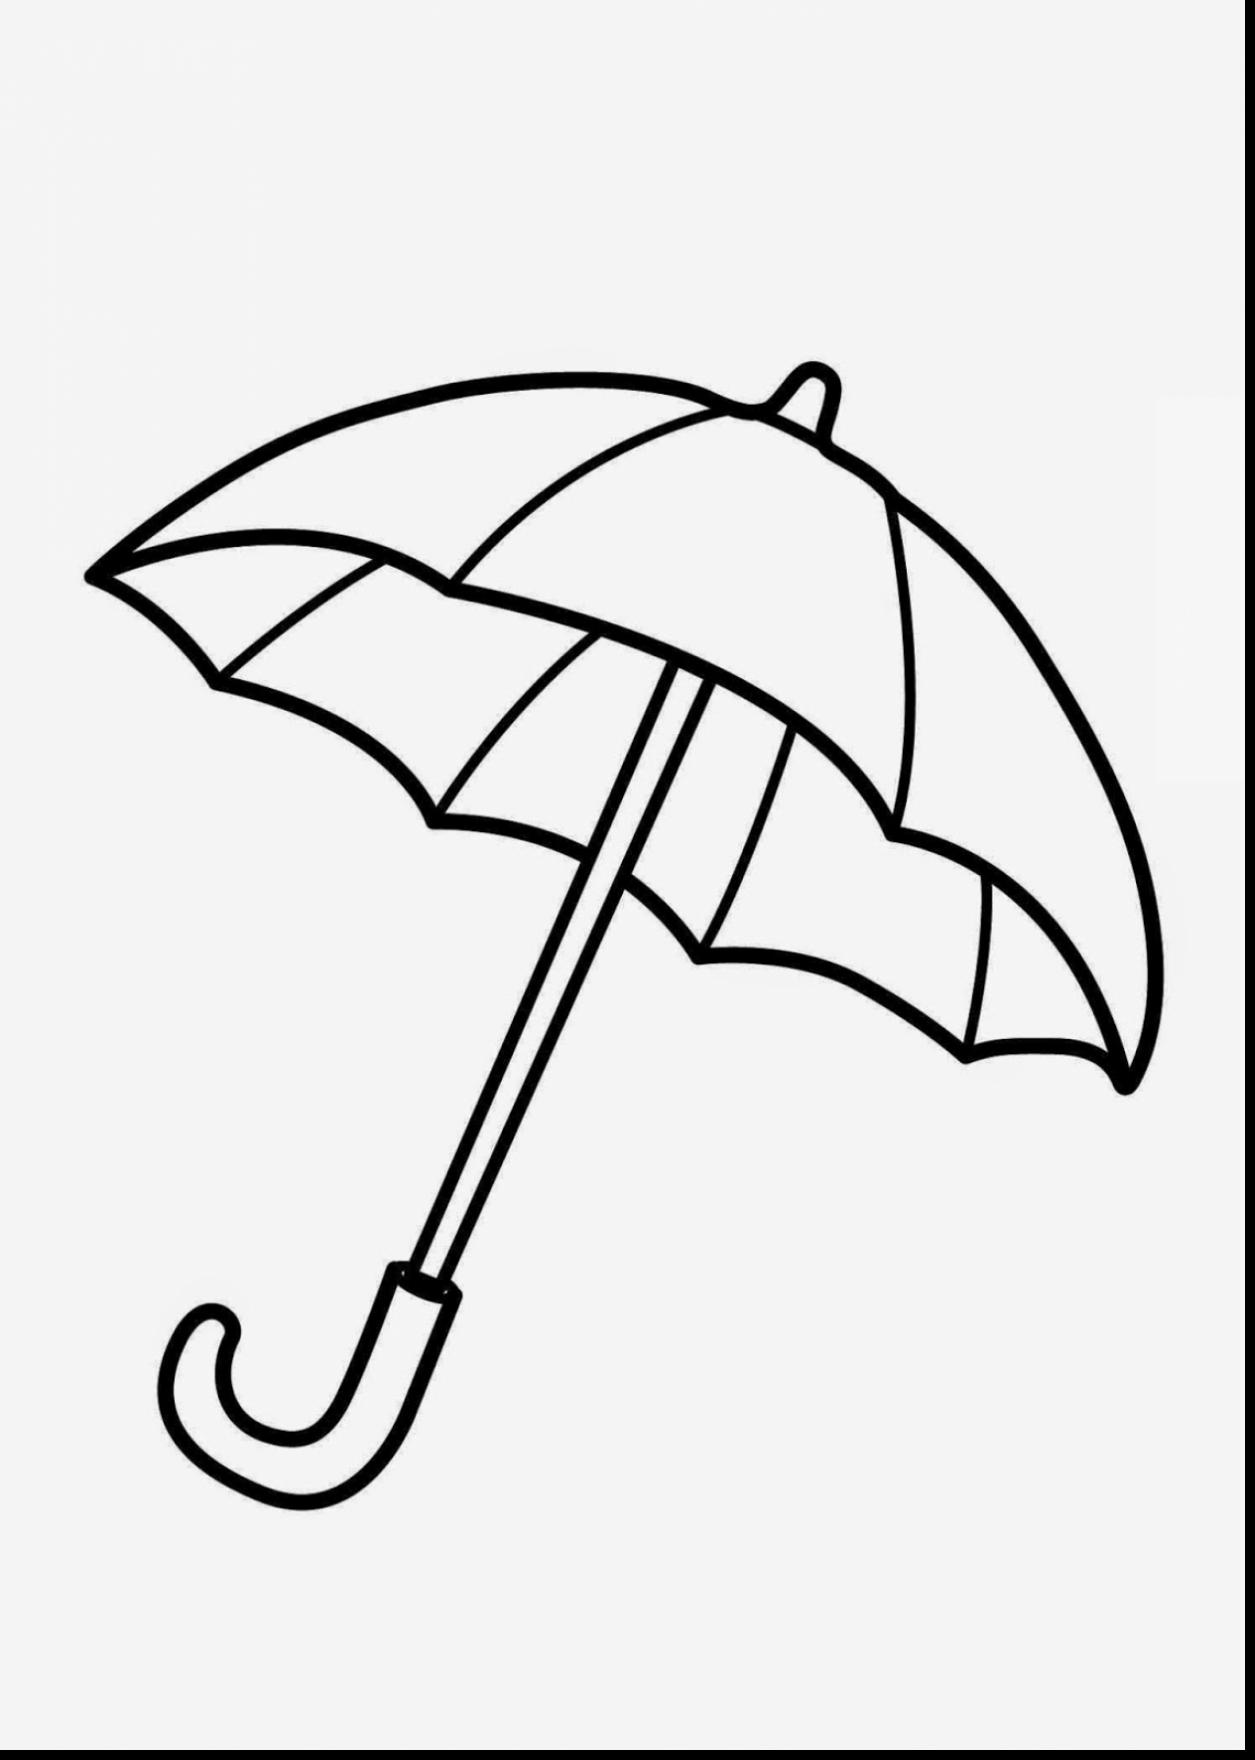 Umbrella Clipart Black And White